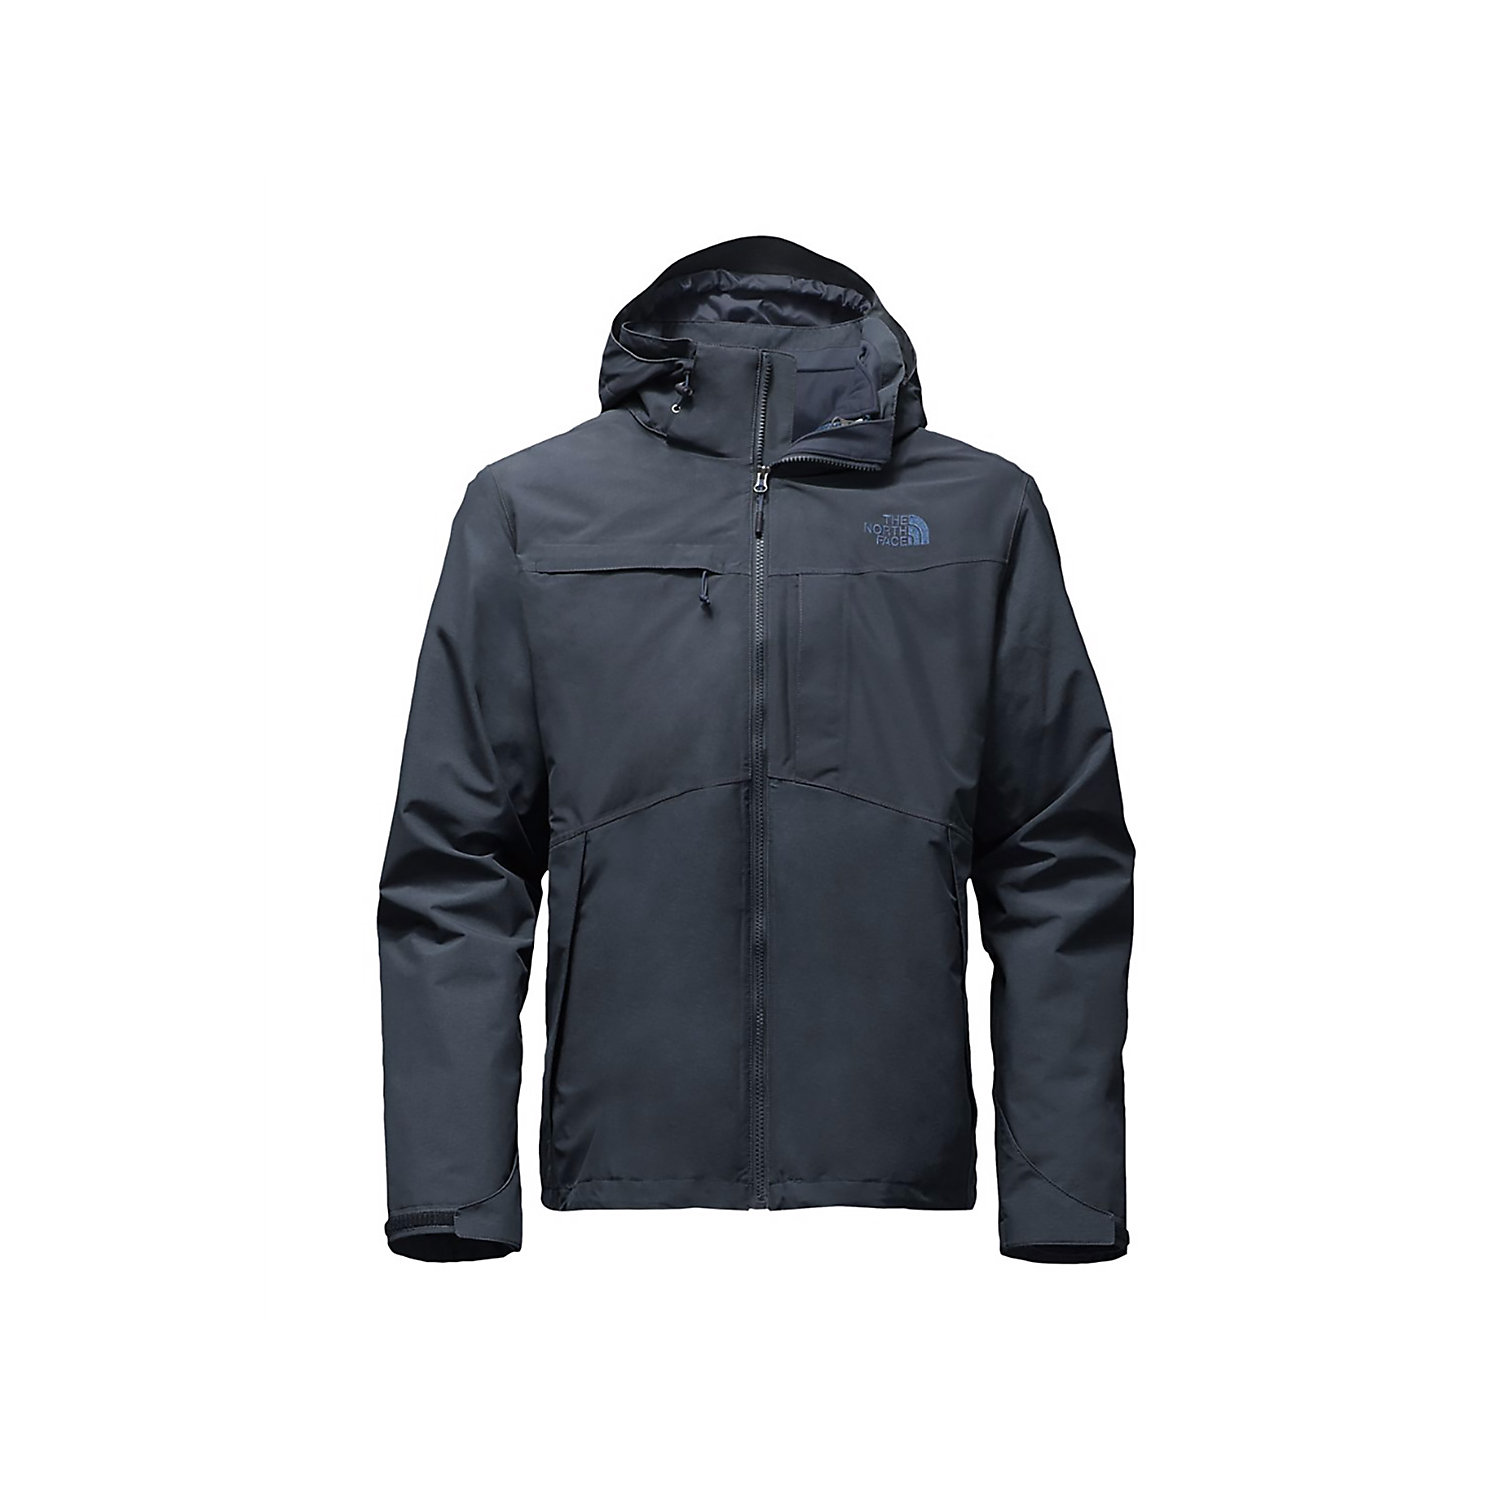 The North Face Men s Condor Triclimate Jacket - Moosejaw 832ebe64c